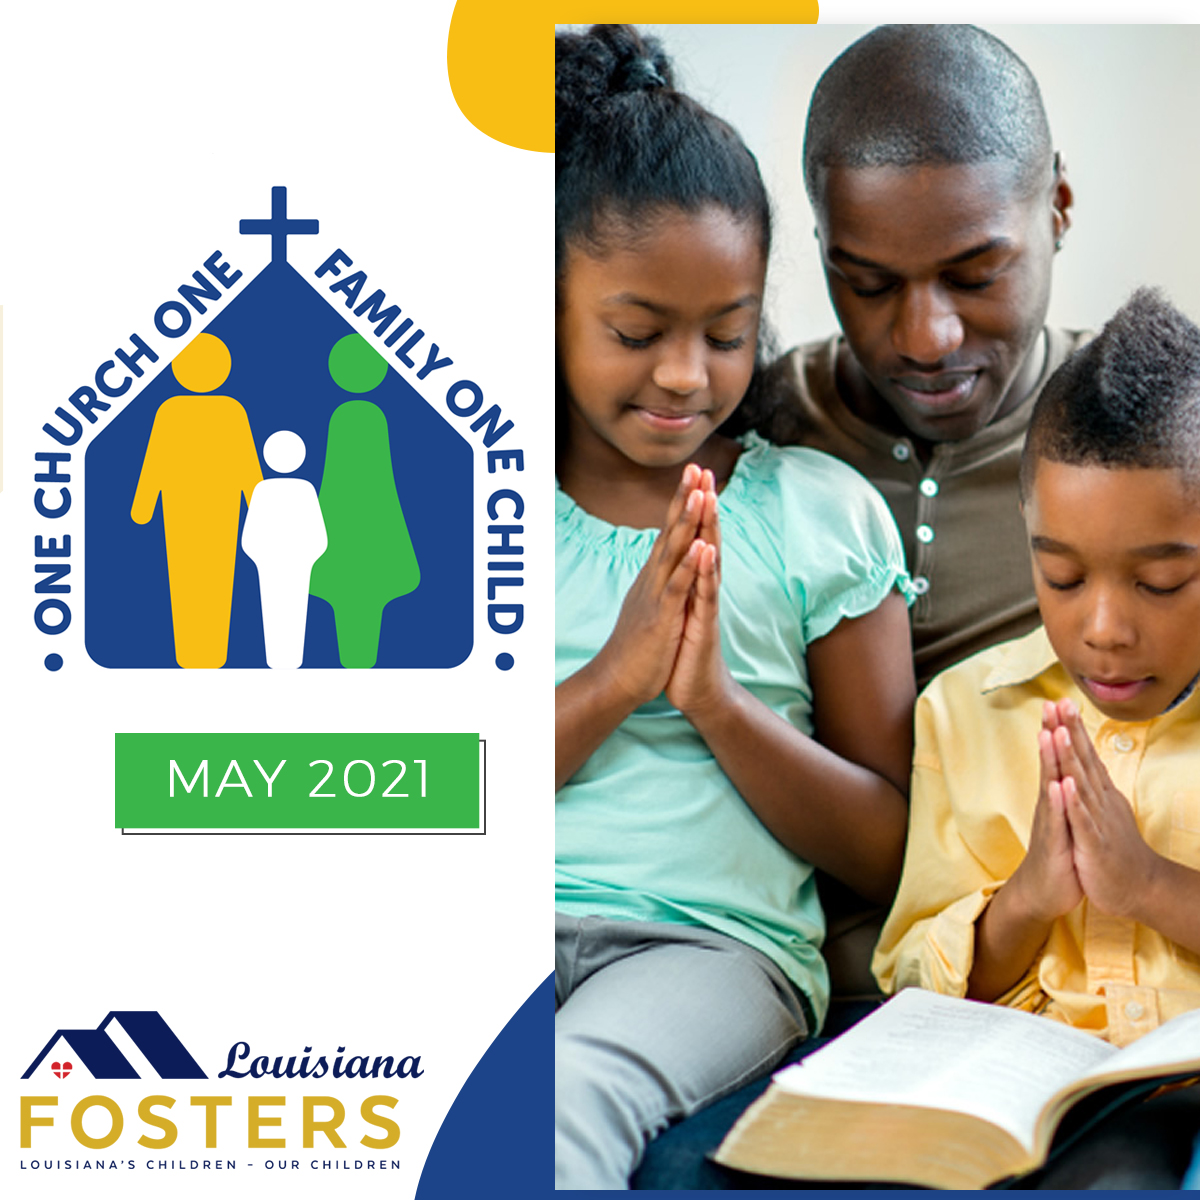 Louisiana Fosters – One Church One Family One Child